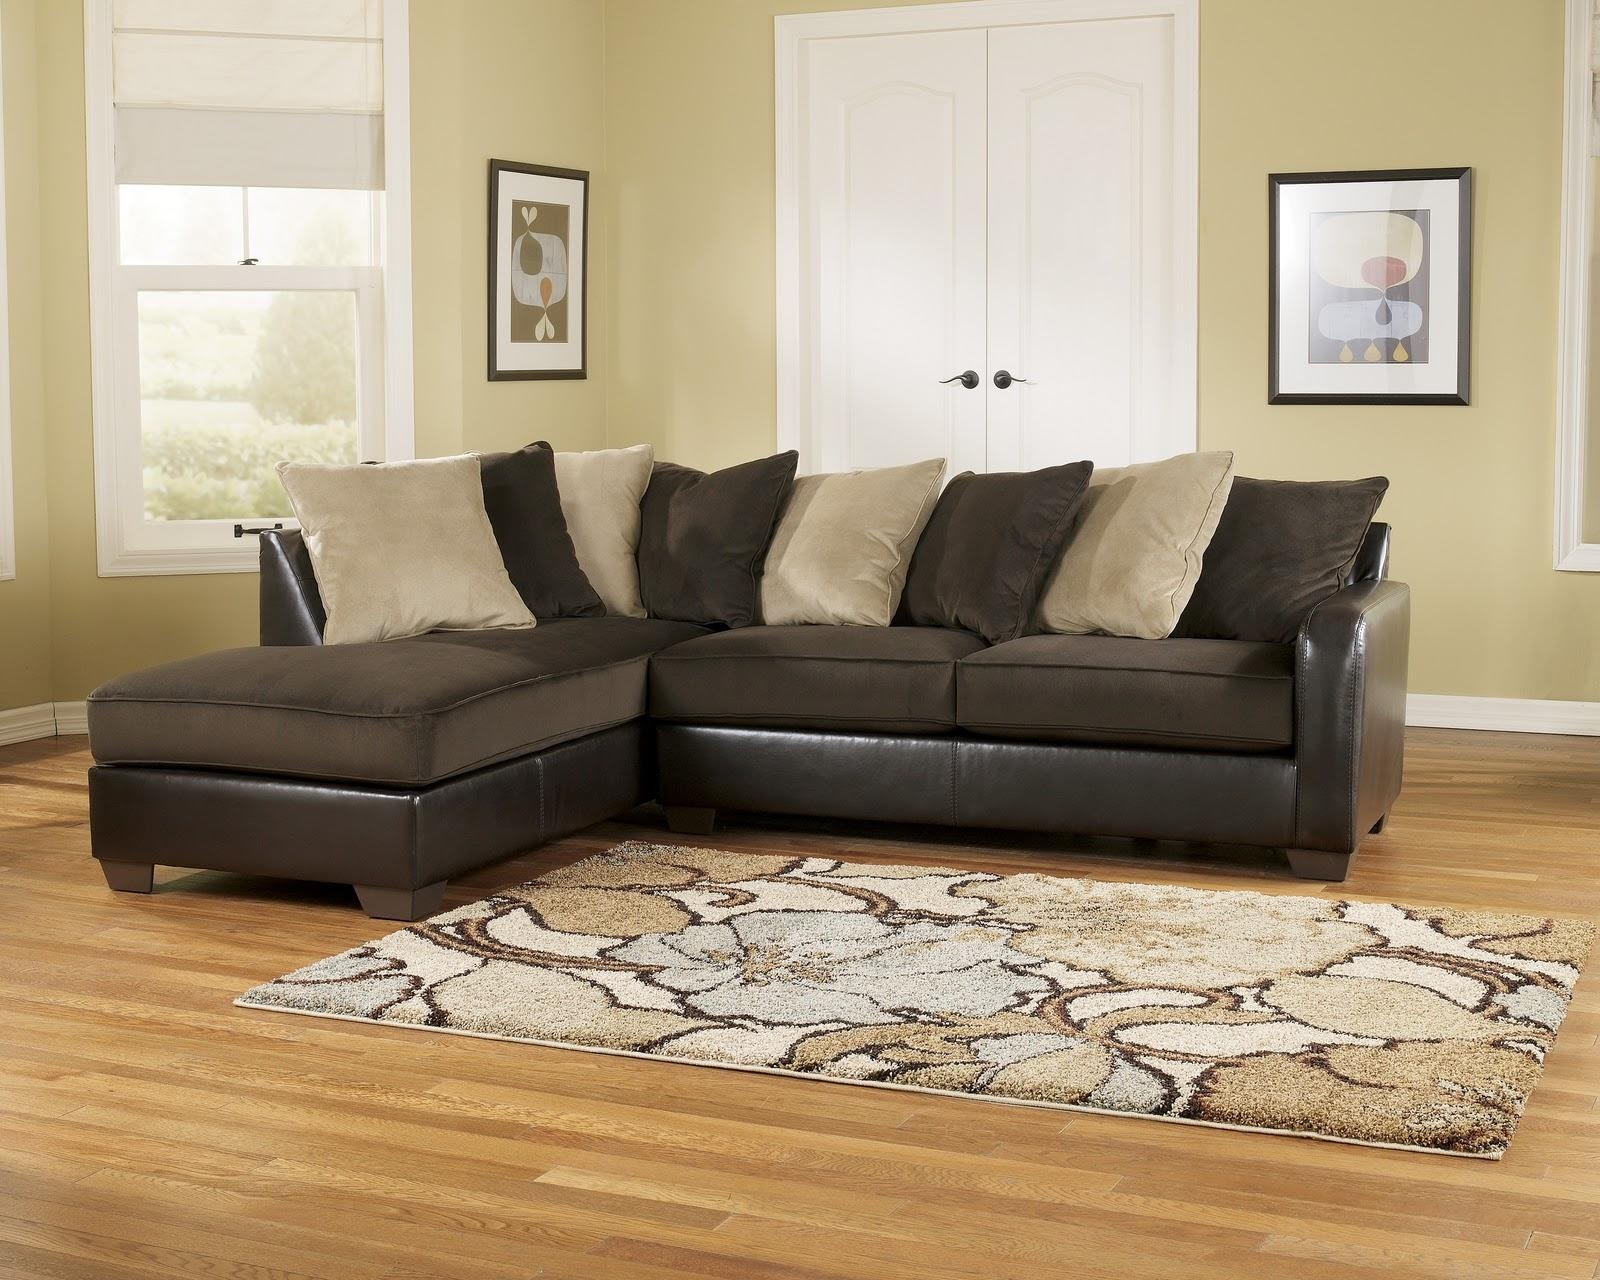 Project Ideas Ashley Furniture Small Sectional Beautiful Design With Ashley Furniture Grenada Sectional (Image 14 of 15)